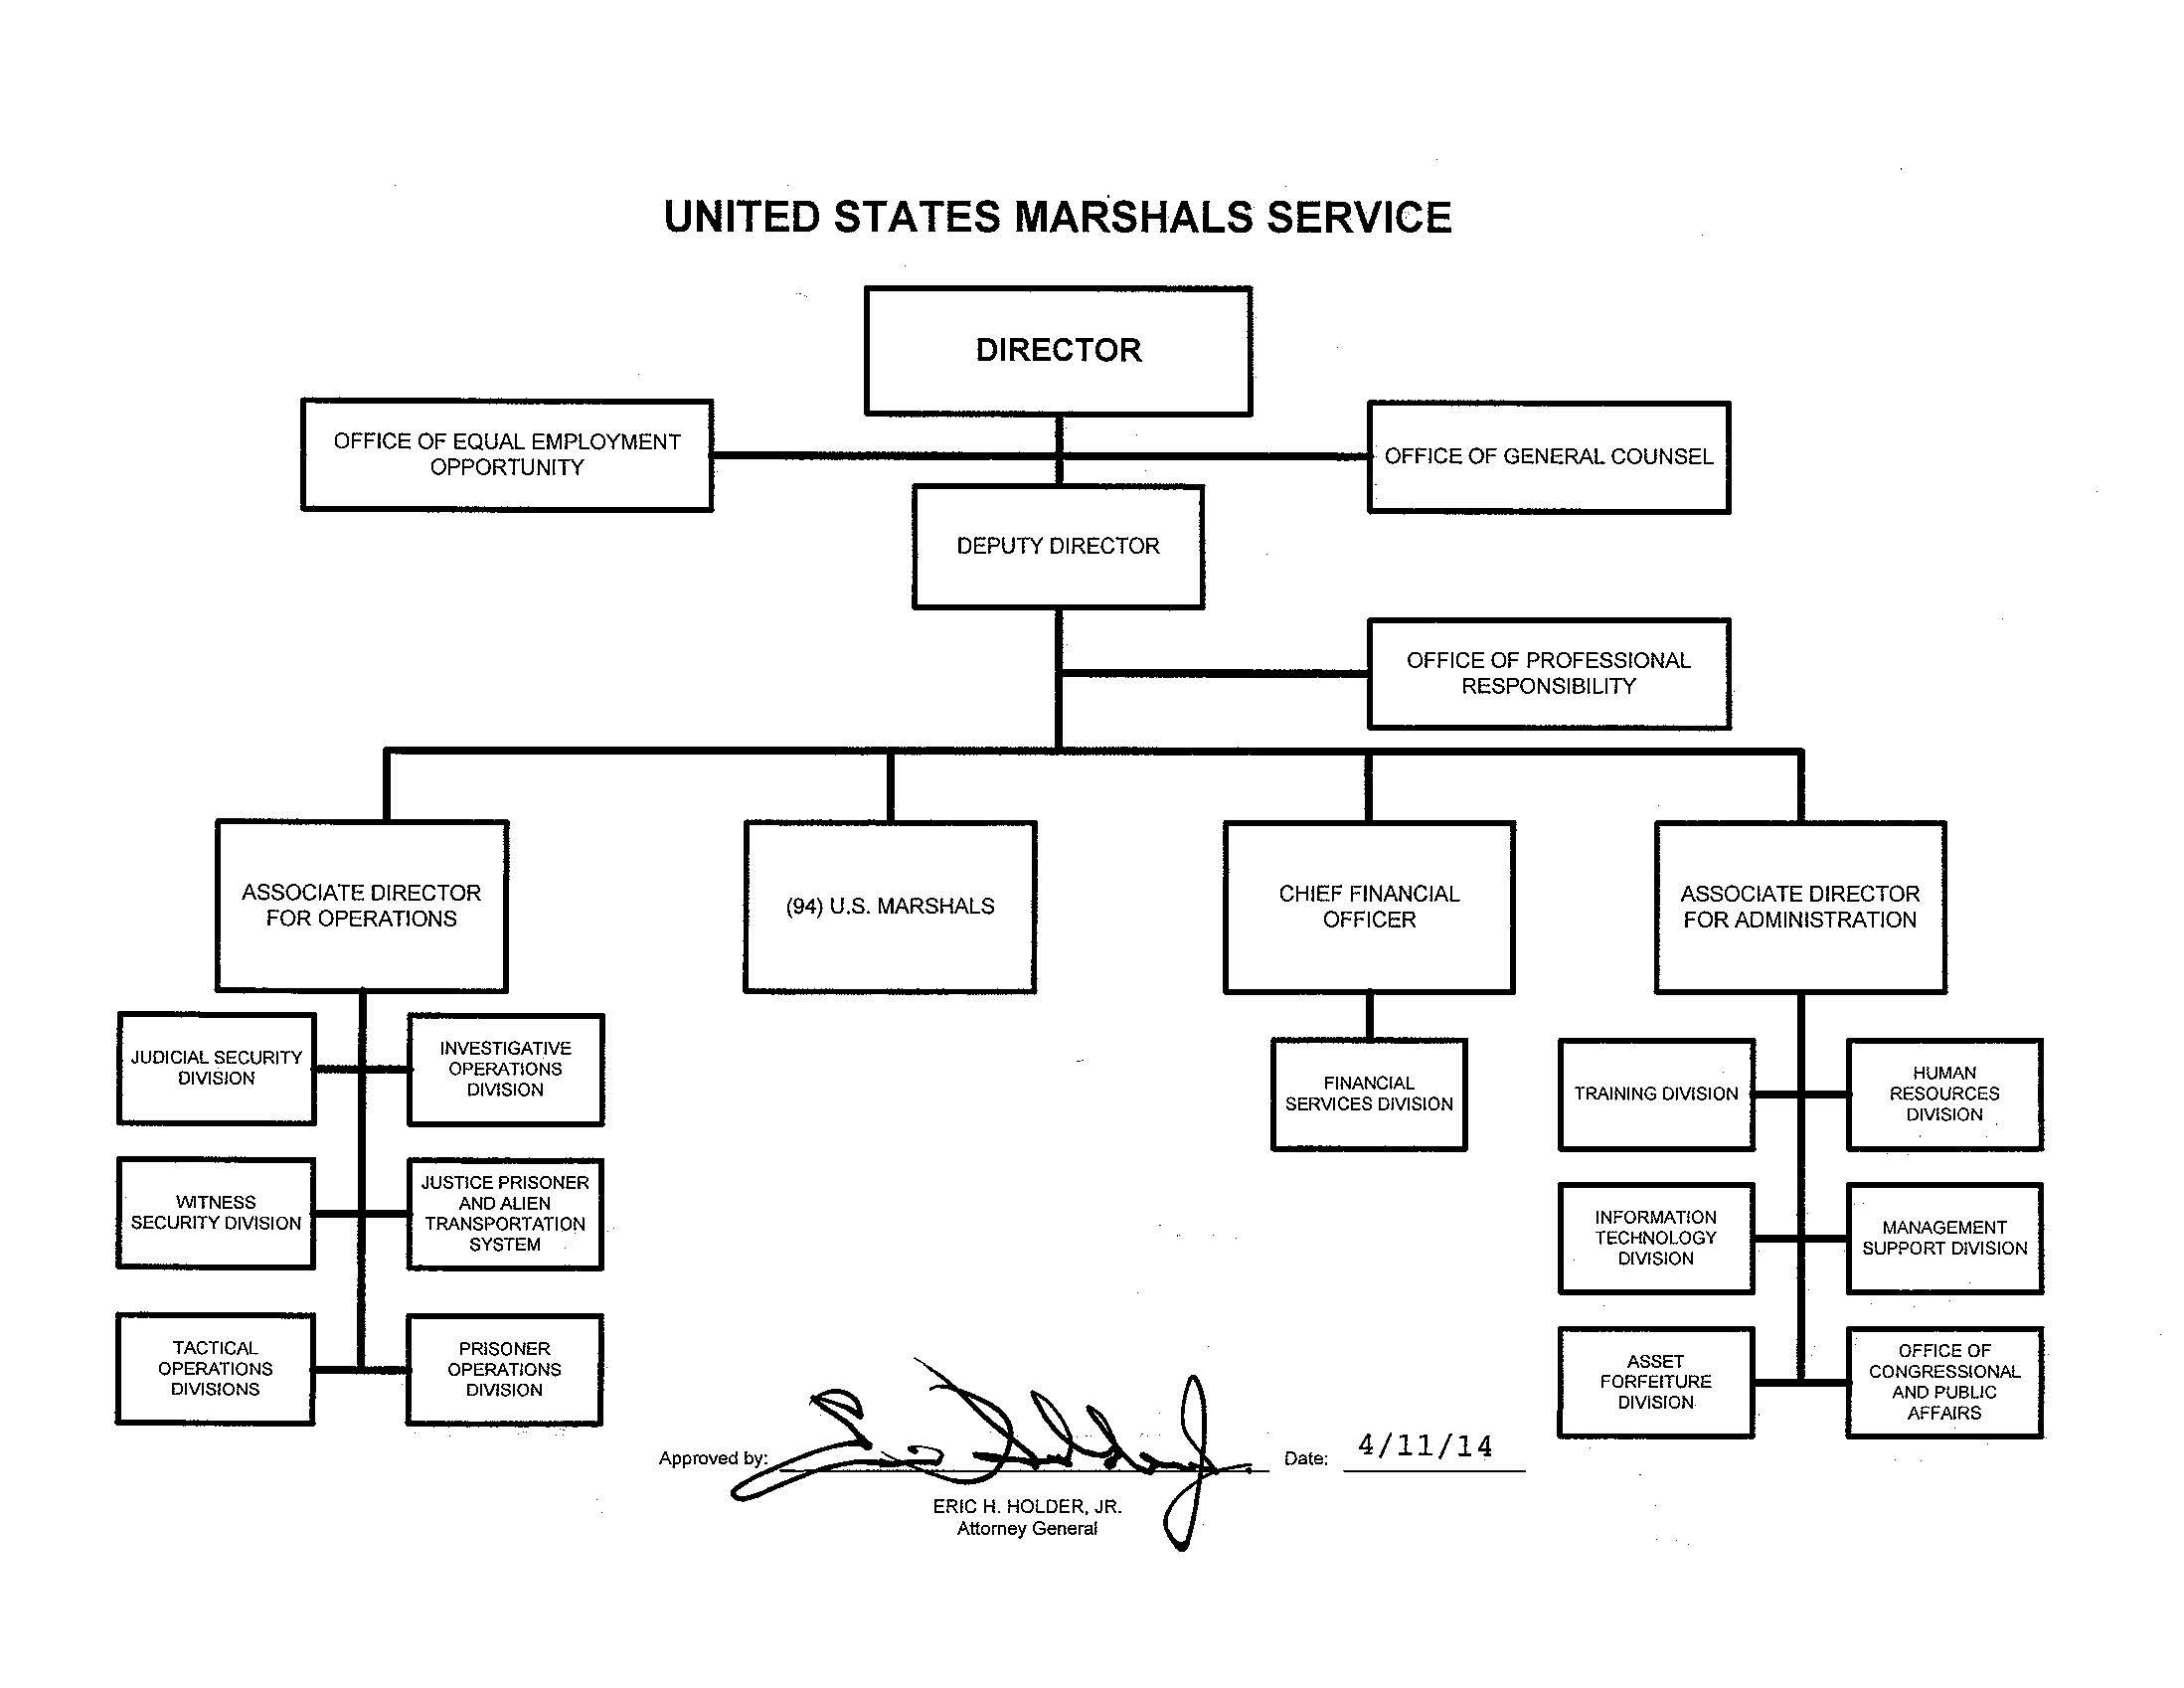 Organization Mission And Functions Manual United States